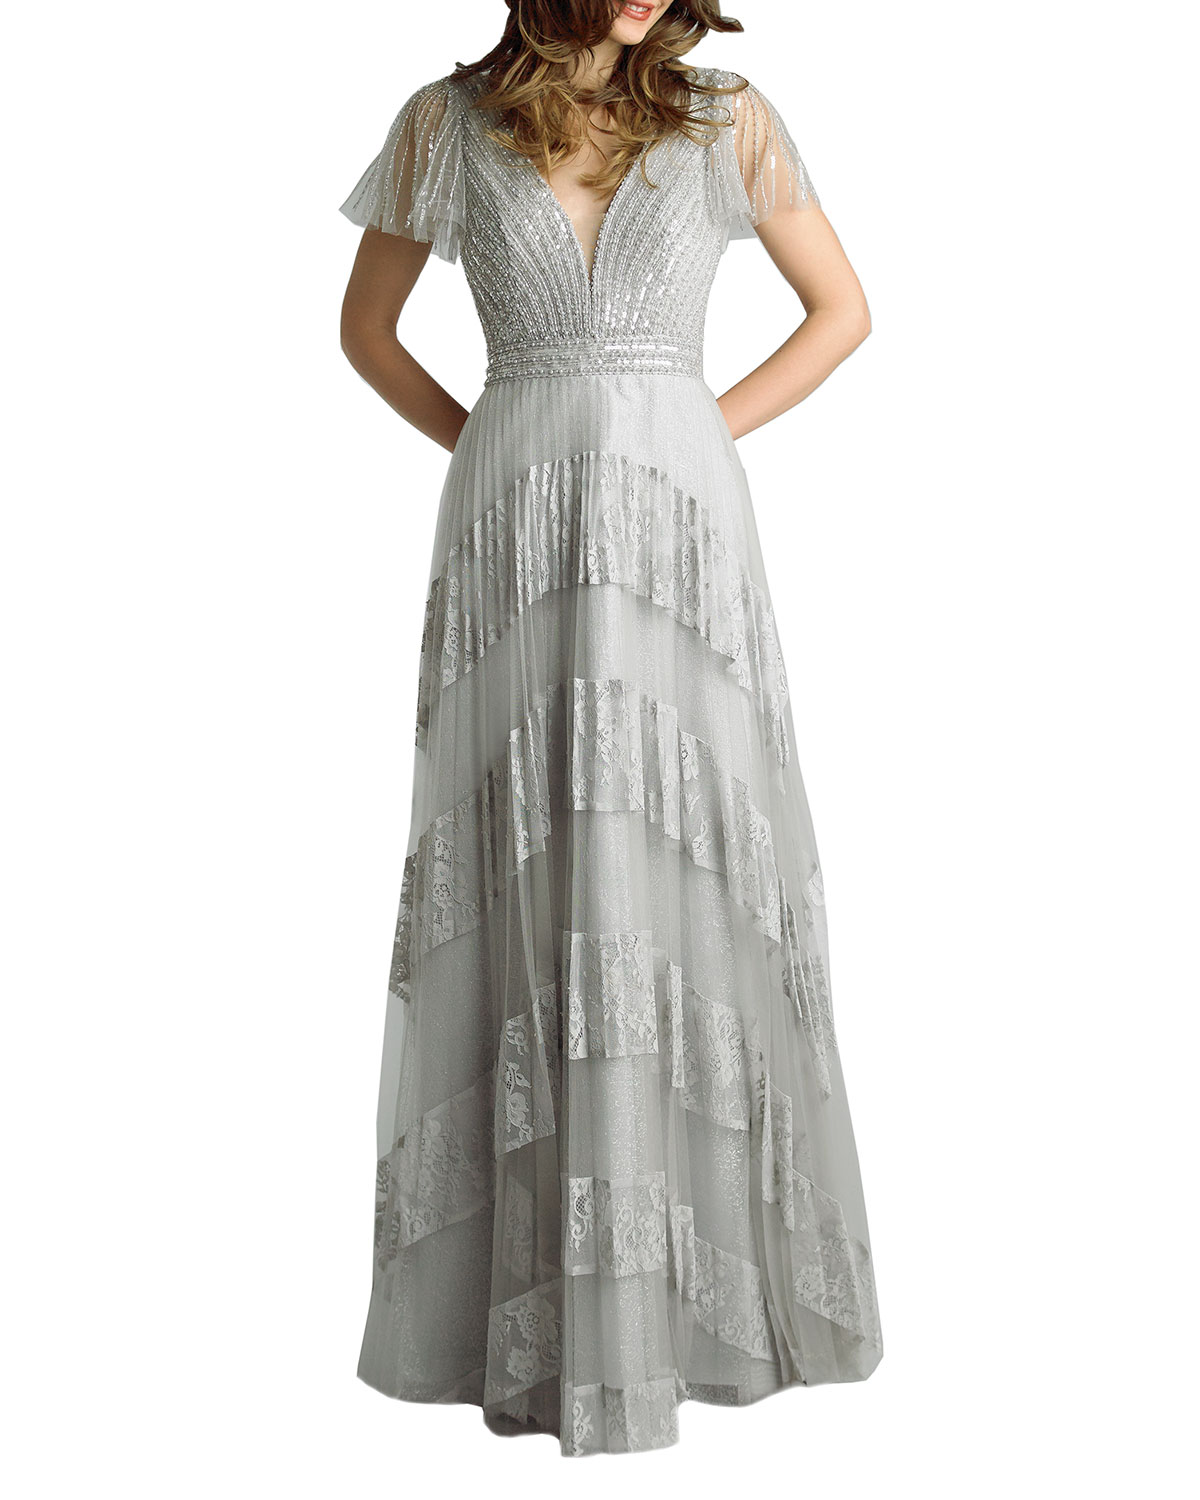 Basix Beaded Embellished Cap-Sleeve Lace Gown